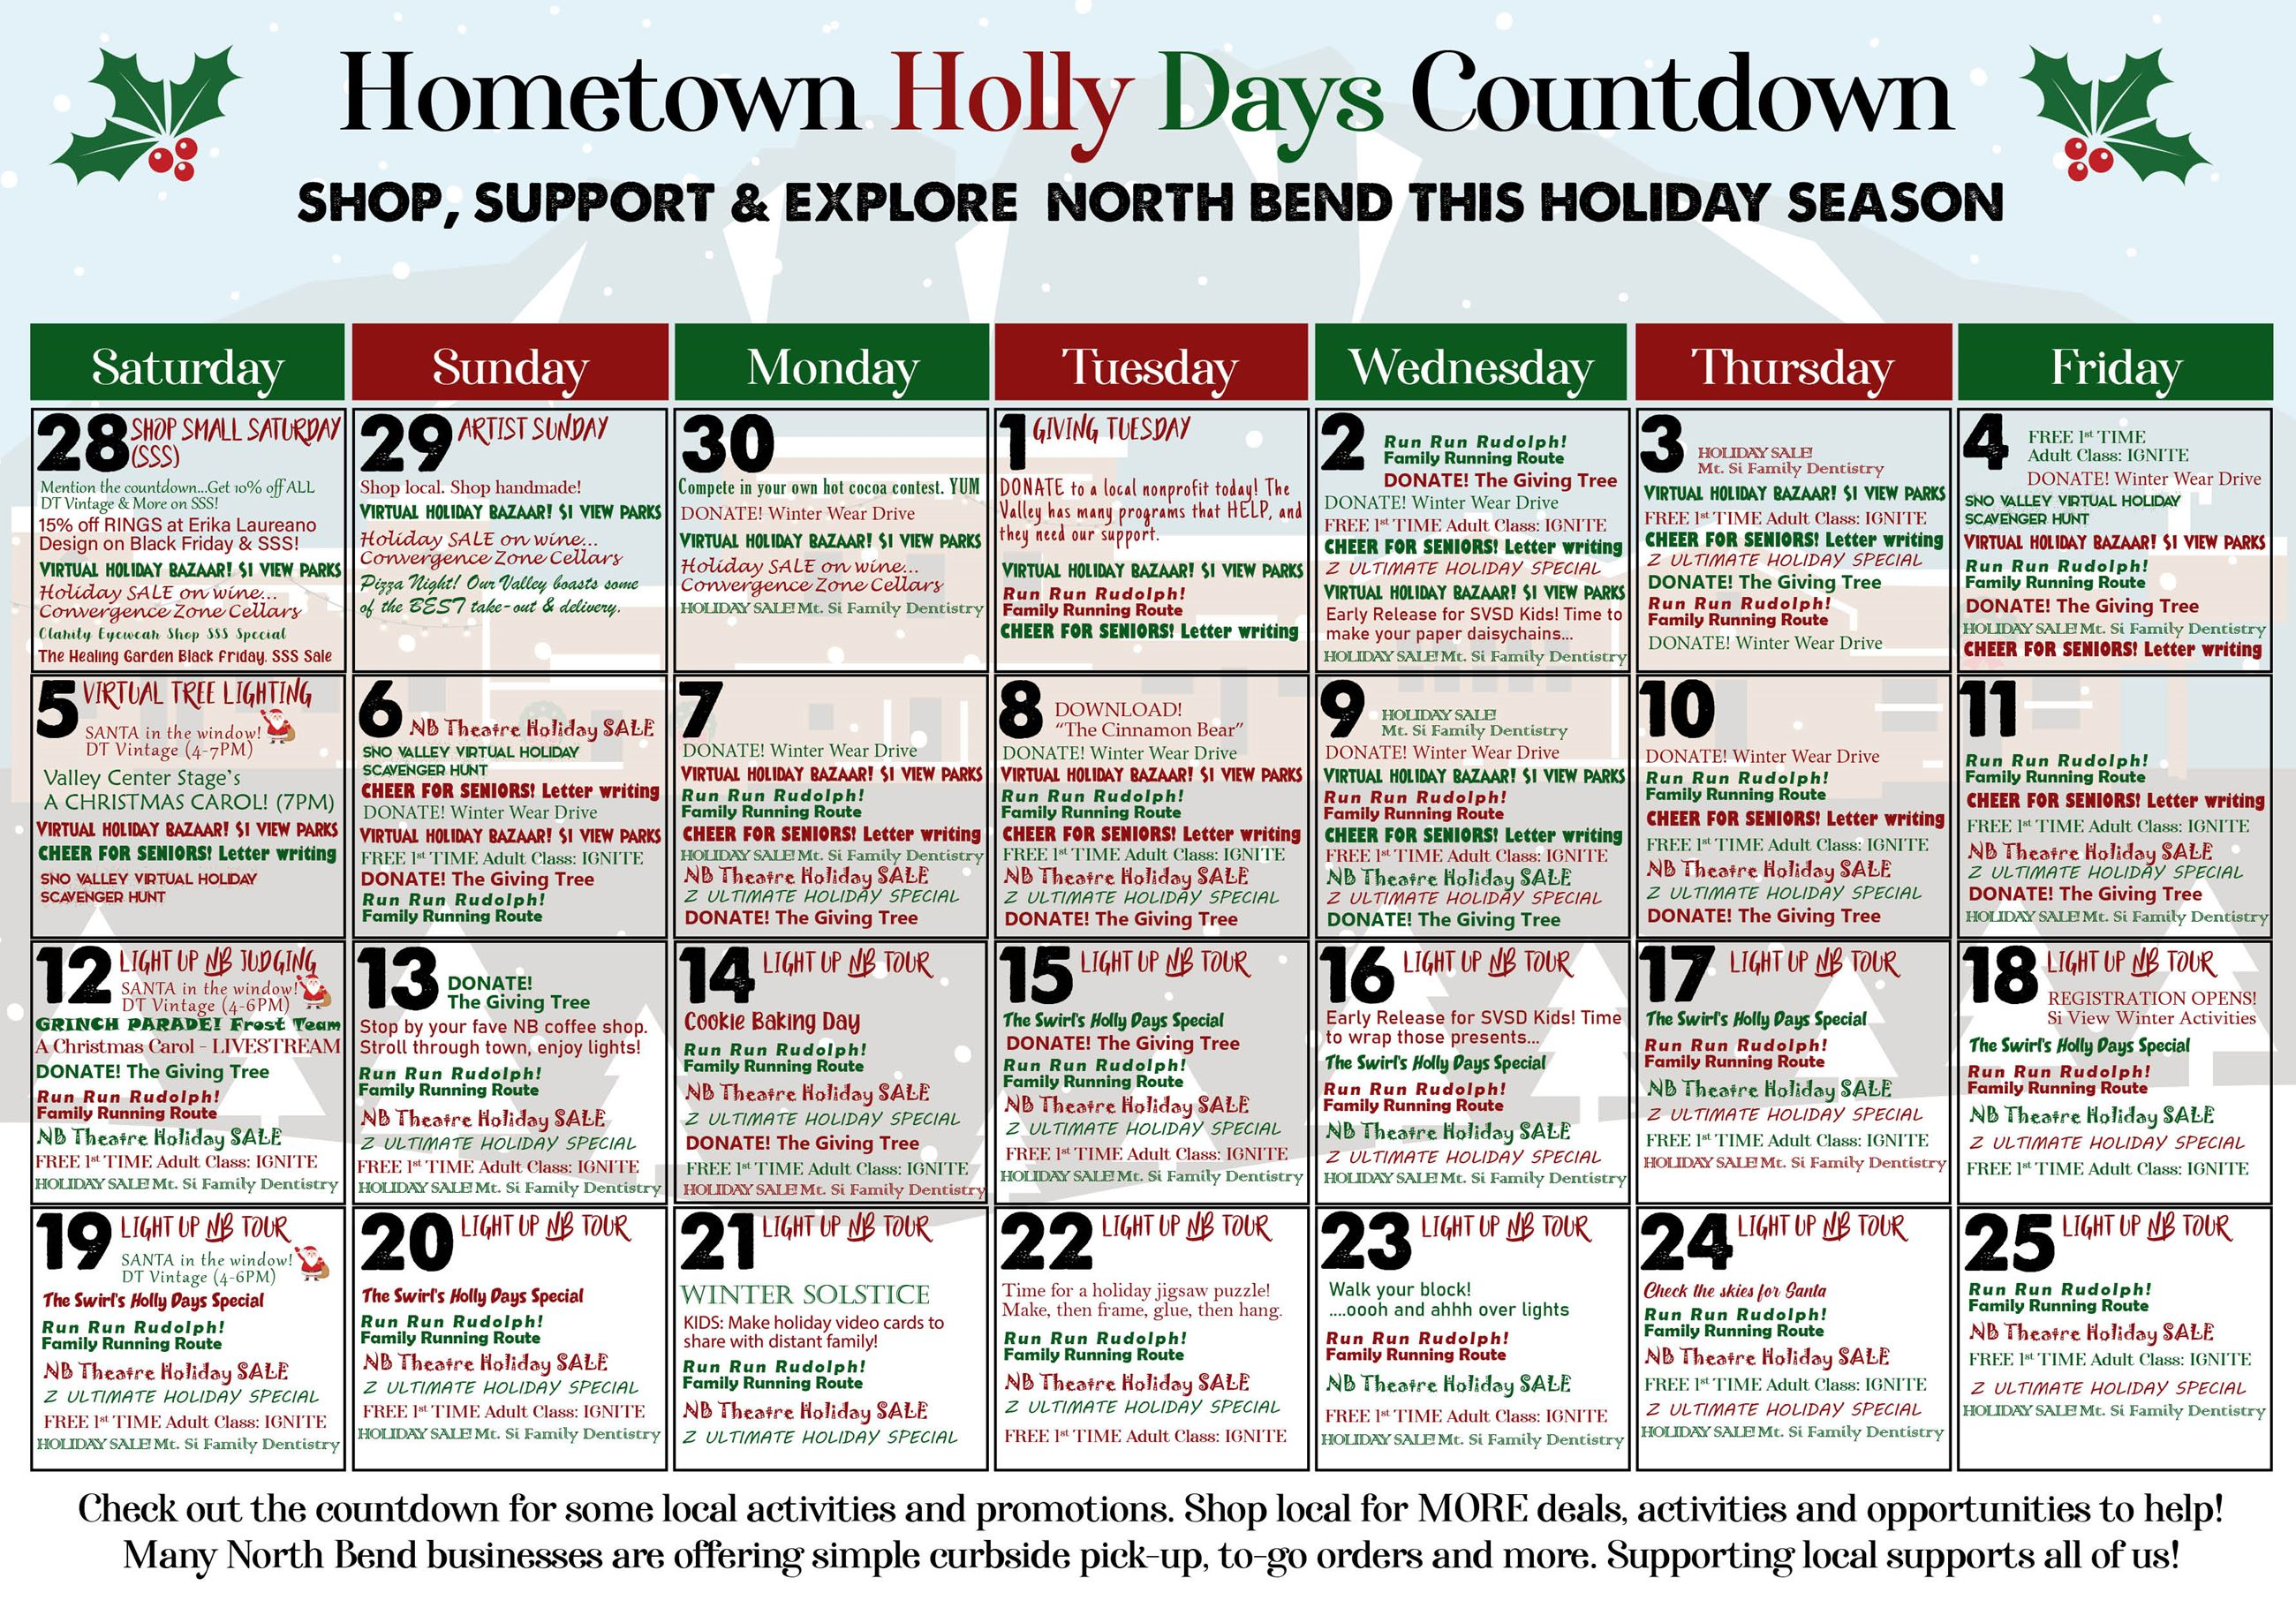 Holly Days Hometown Holiday Countdown Calendar